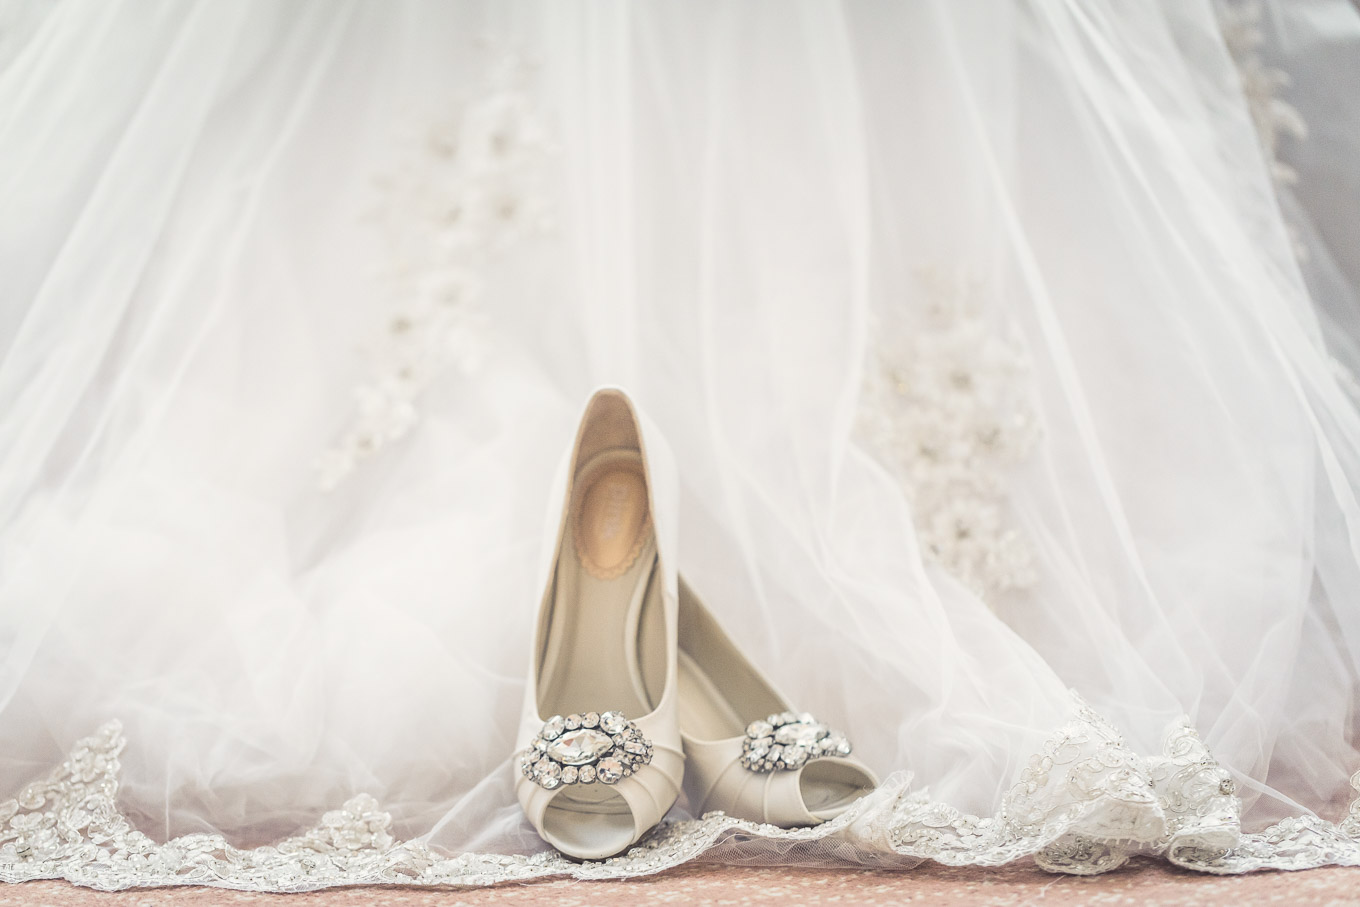 Manor of Groves Wedding Photography